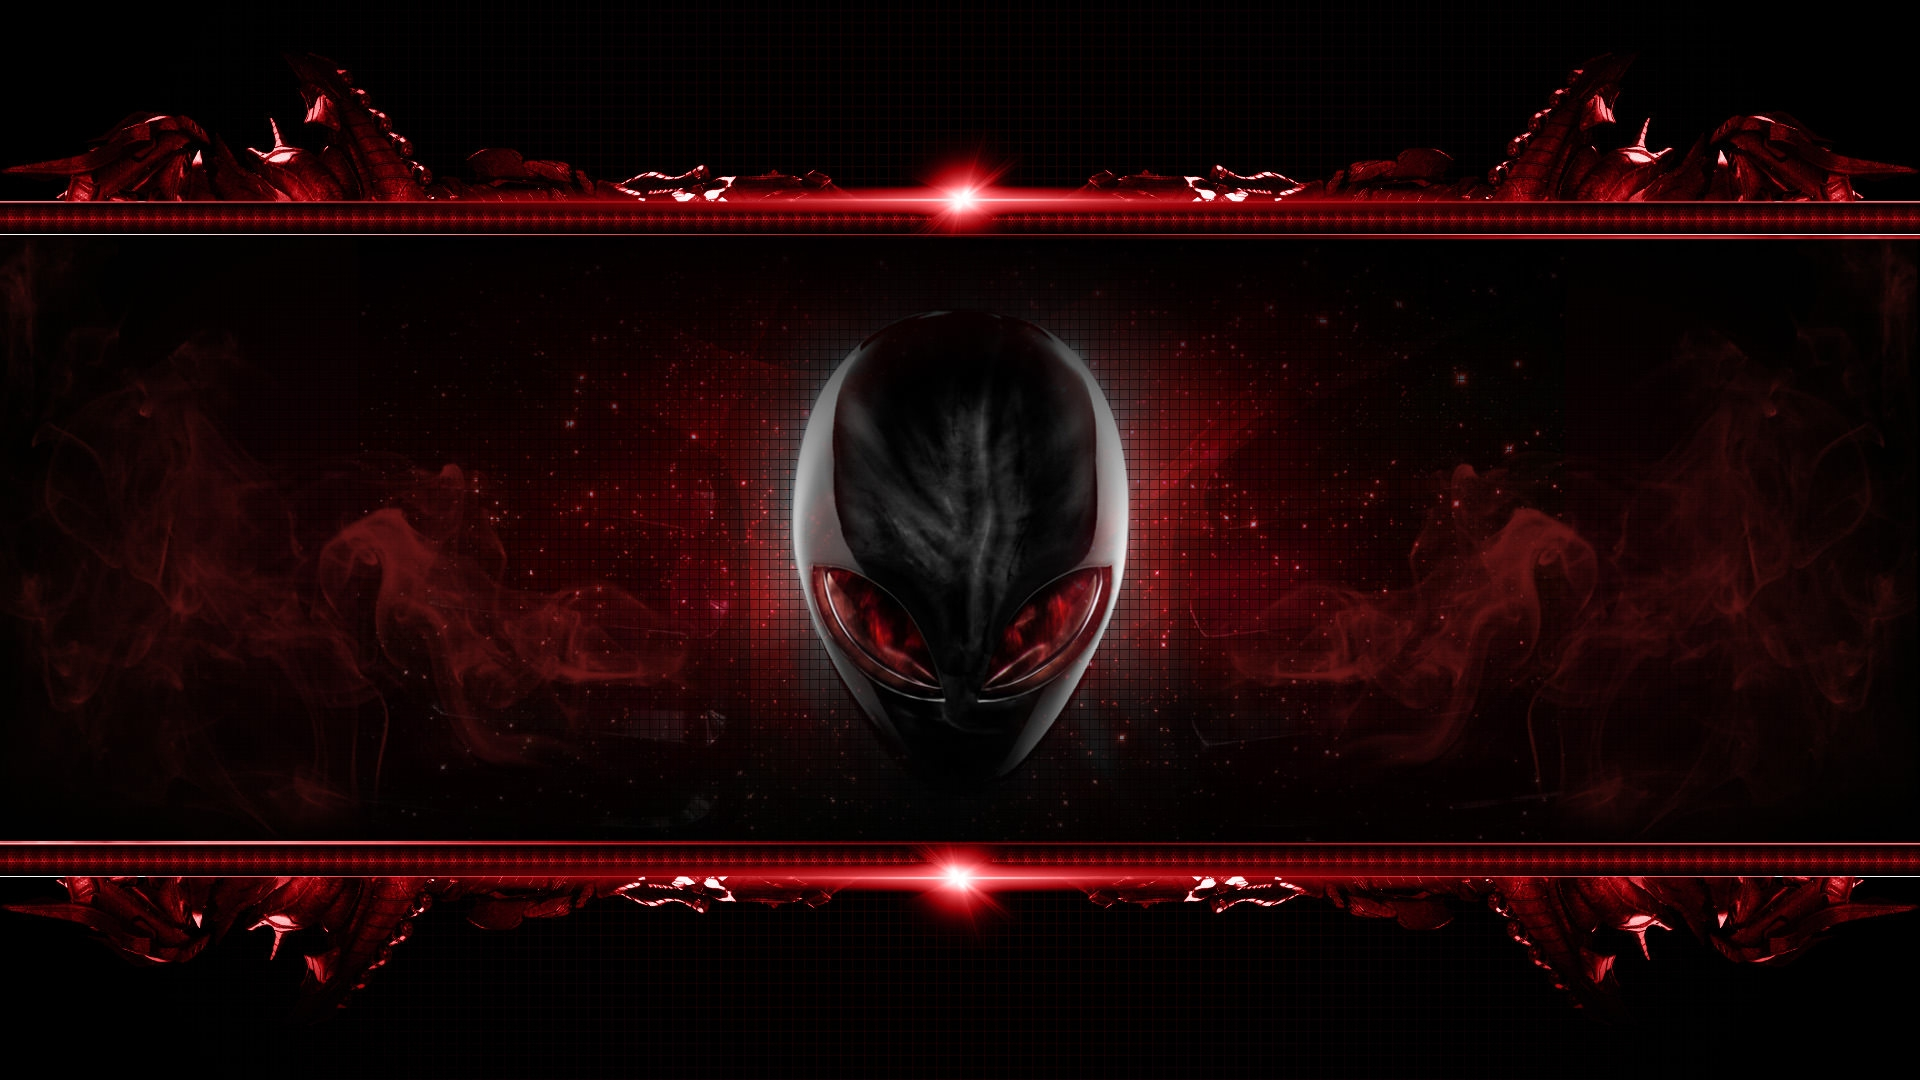 Red & Black Alienware Wallpaper